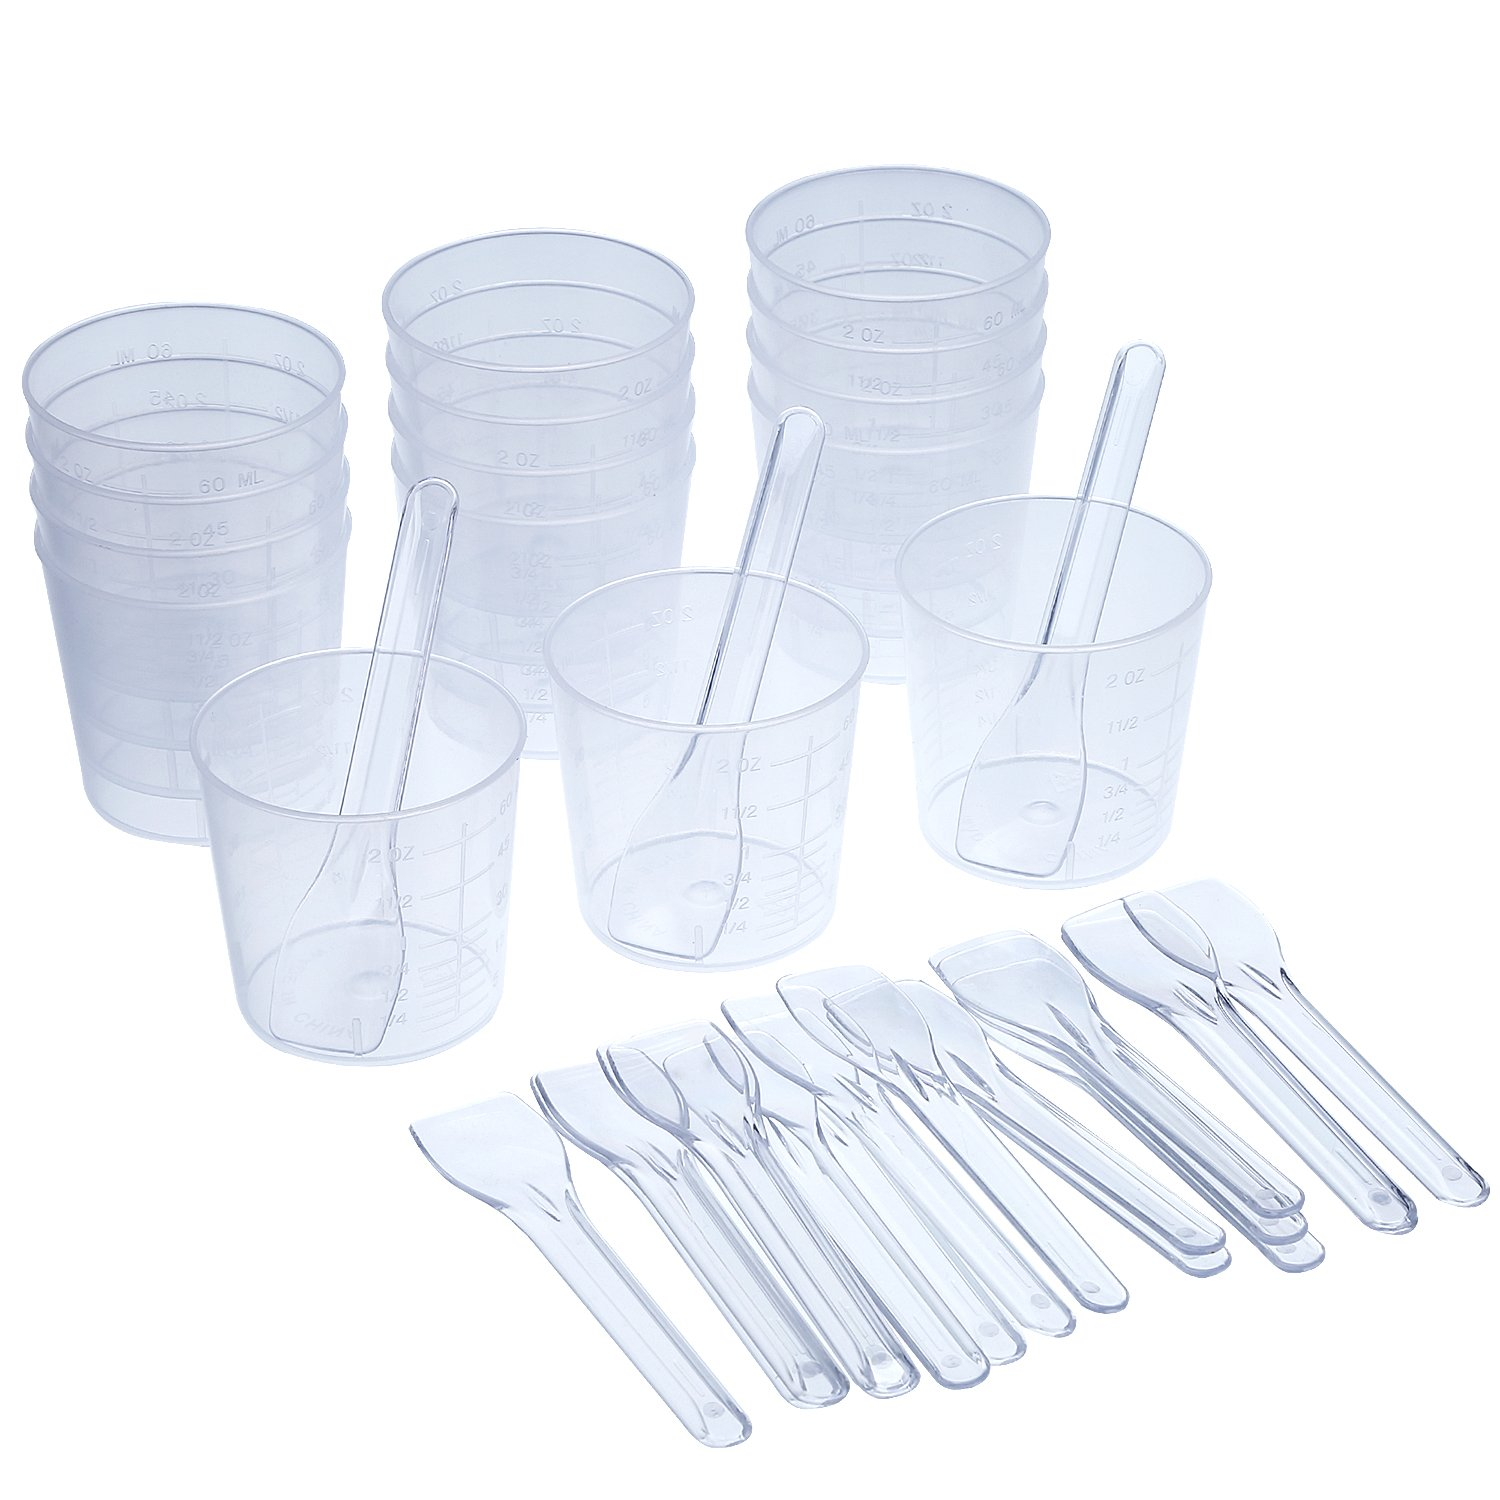 Shappy 15 Pieces 2 OZ Graduated Plastic Cups and 20 Pieces Plastic Applicators/Sticks for Mixing Paint, Stain, Epoxy, Resin